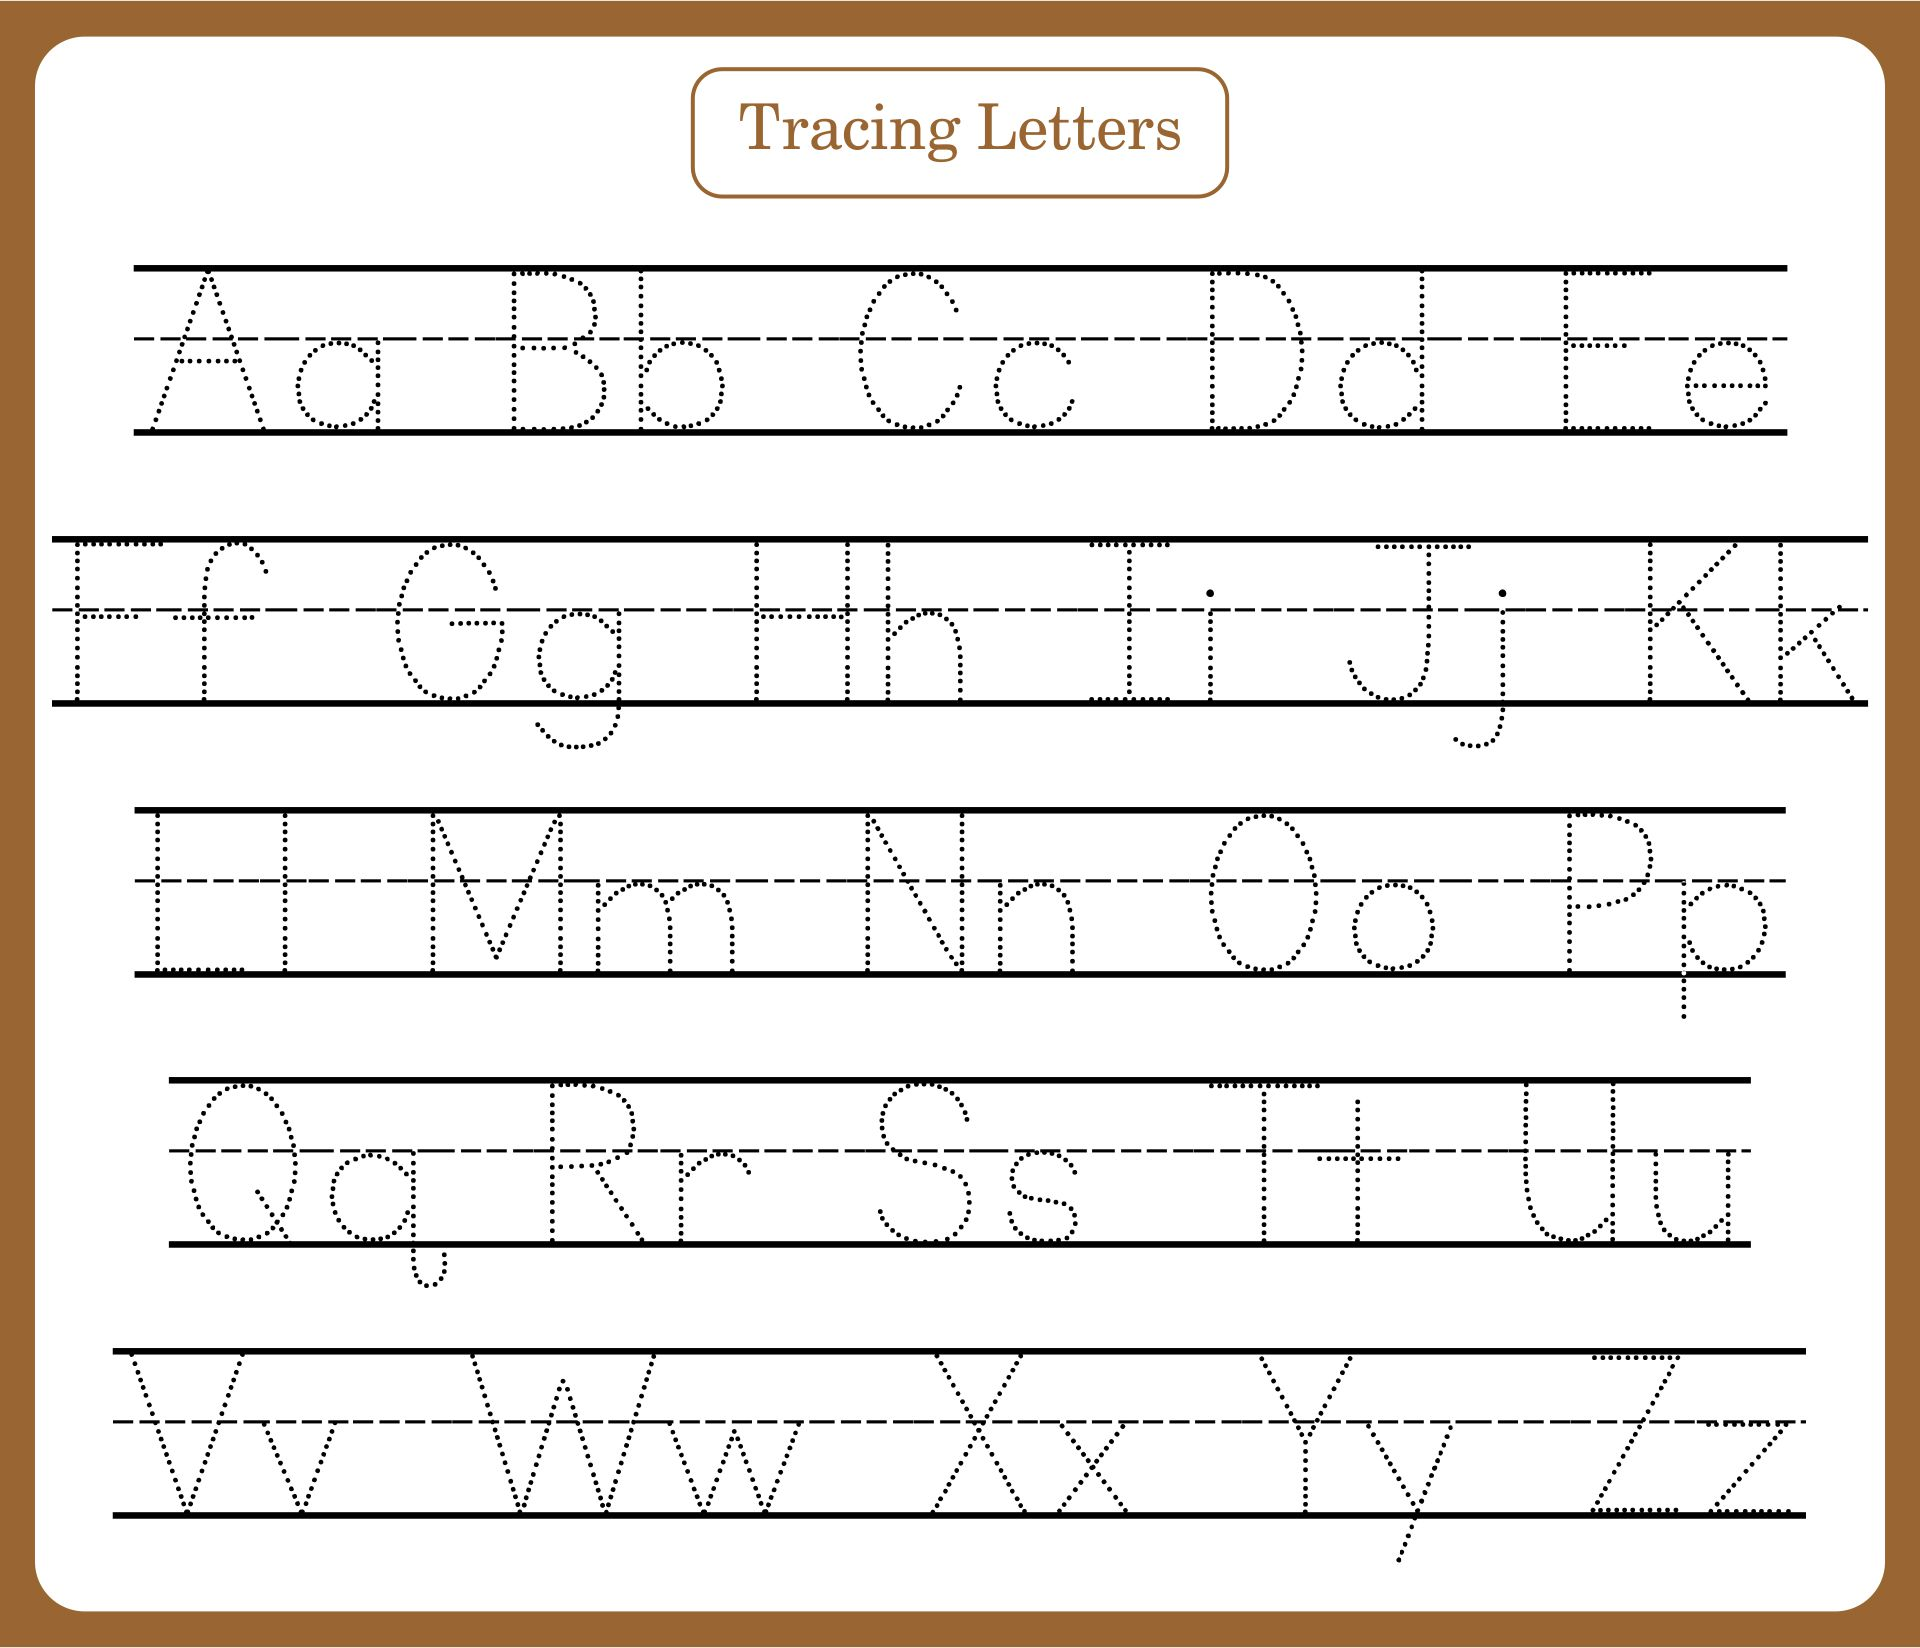 7 Best Images of Free Printable Tracing Letters - Preschool ...